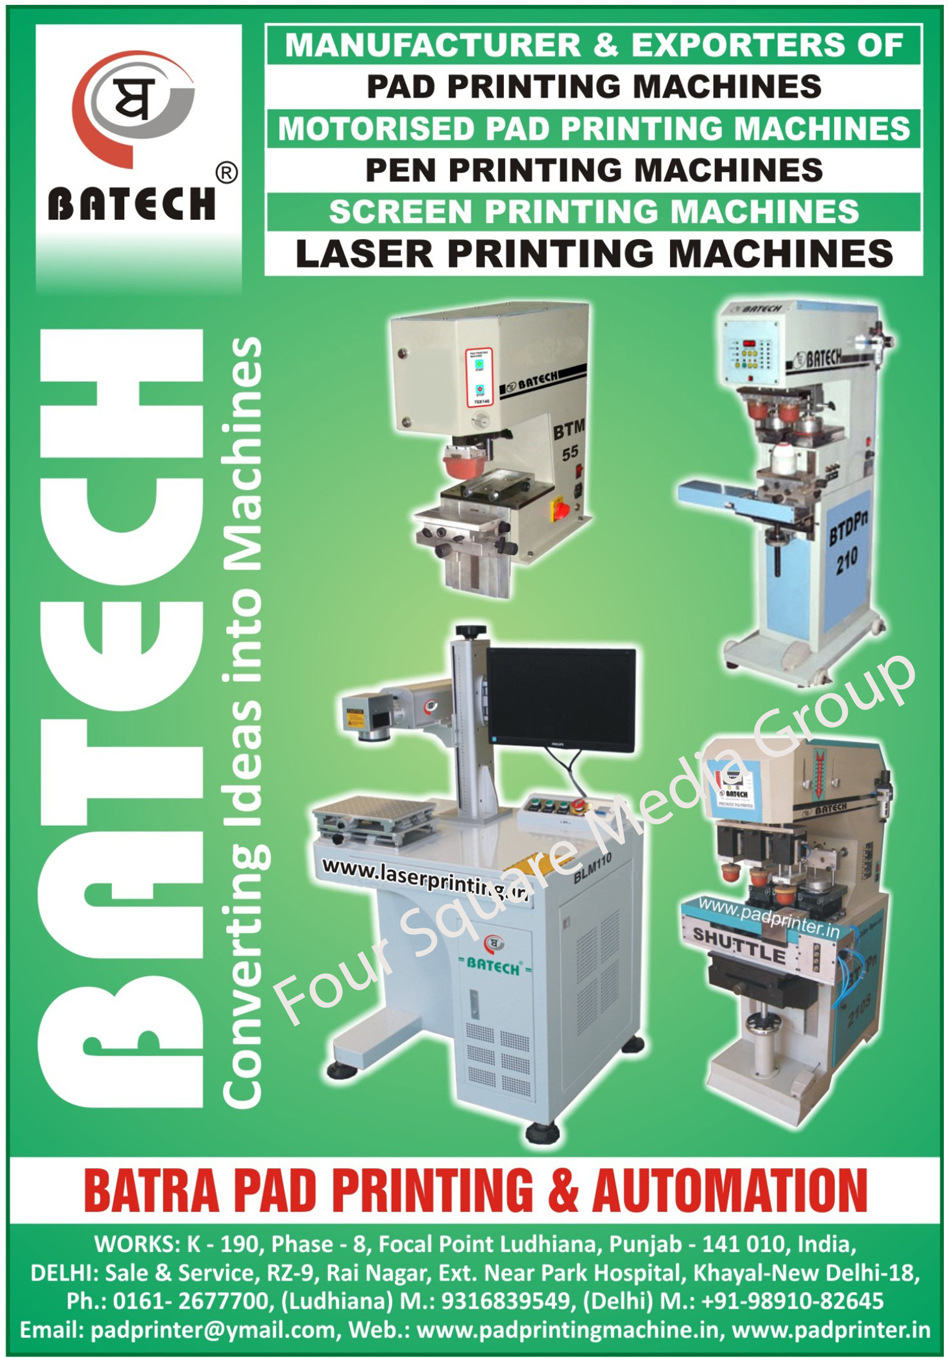 Pad Printing Machines, Motorised Pad Printing Machines, Pen Printing Machines, Screen Printing Machines, Laser Printing Machines